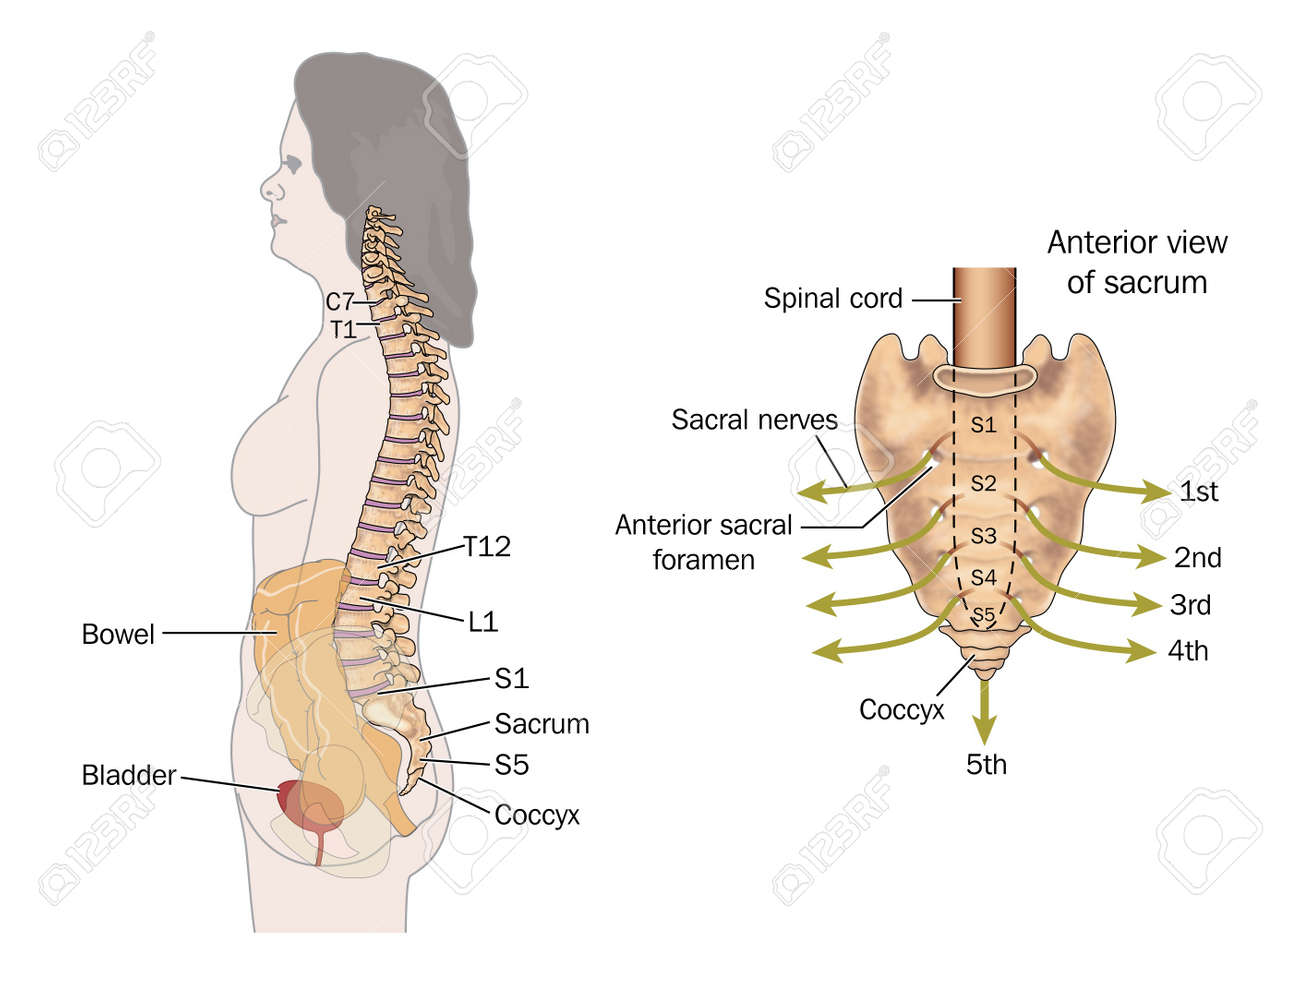 Side View Of The Bowel, Spinal Column And Sacral Nerves, To Show ...